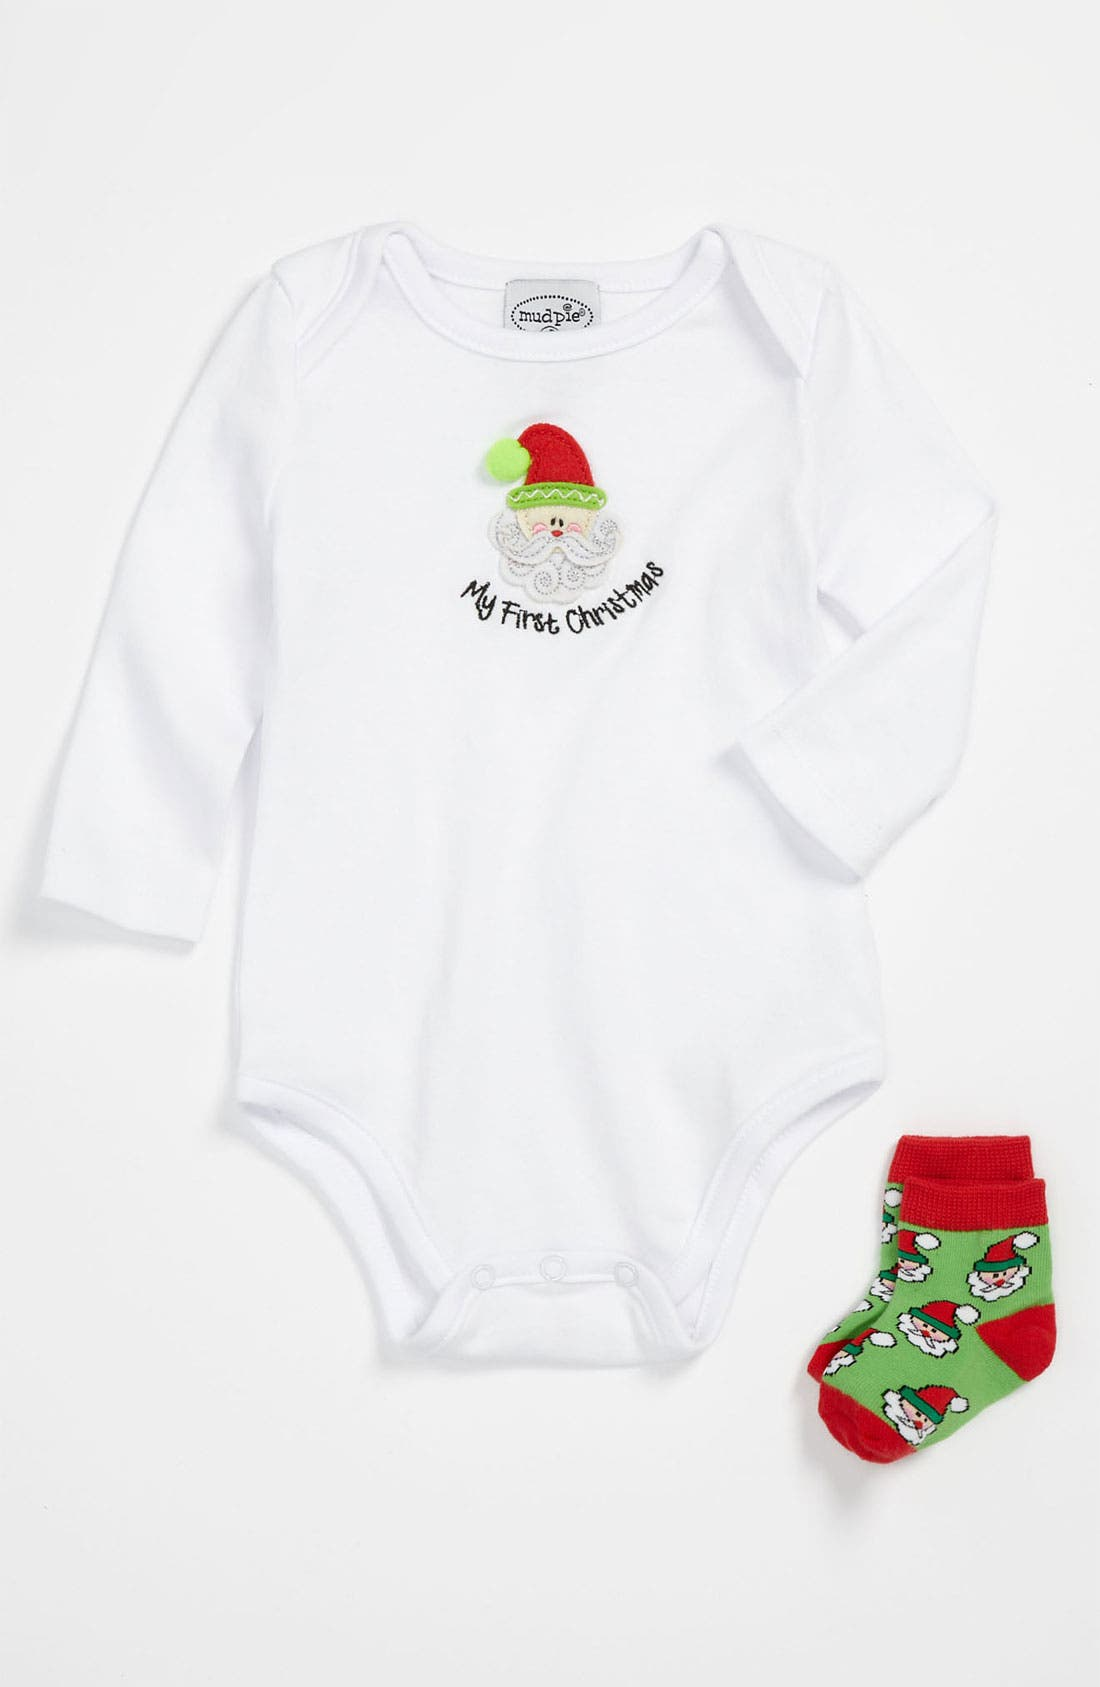 Alternate Image 1 Selected - Mud Pie 'My First Christmas' Bodysuit & Socks (Infant)